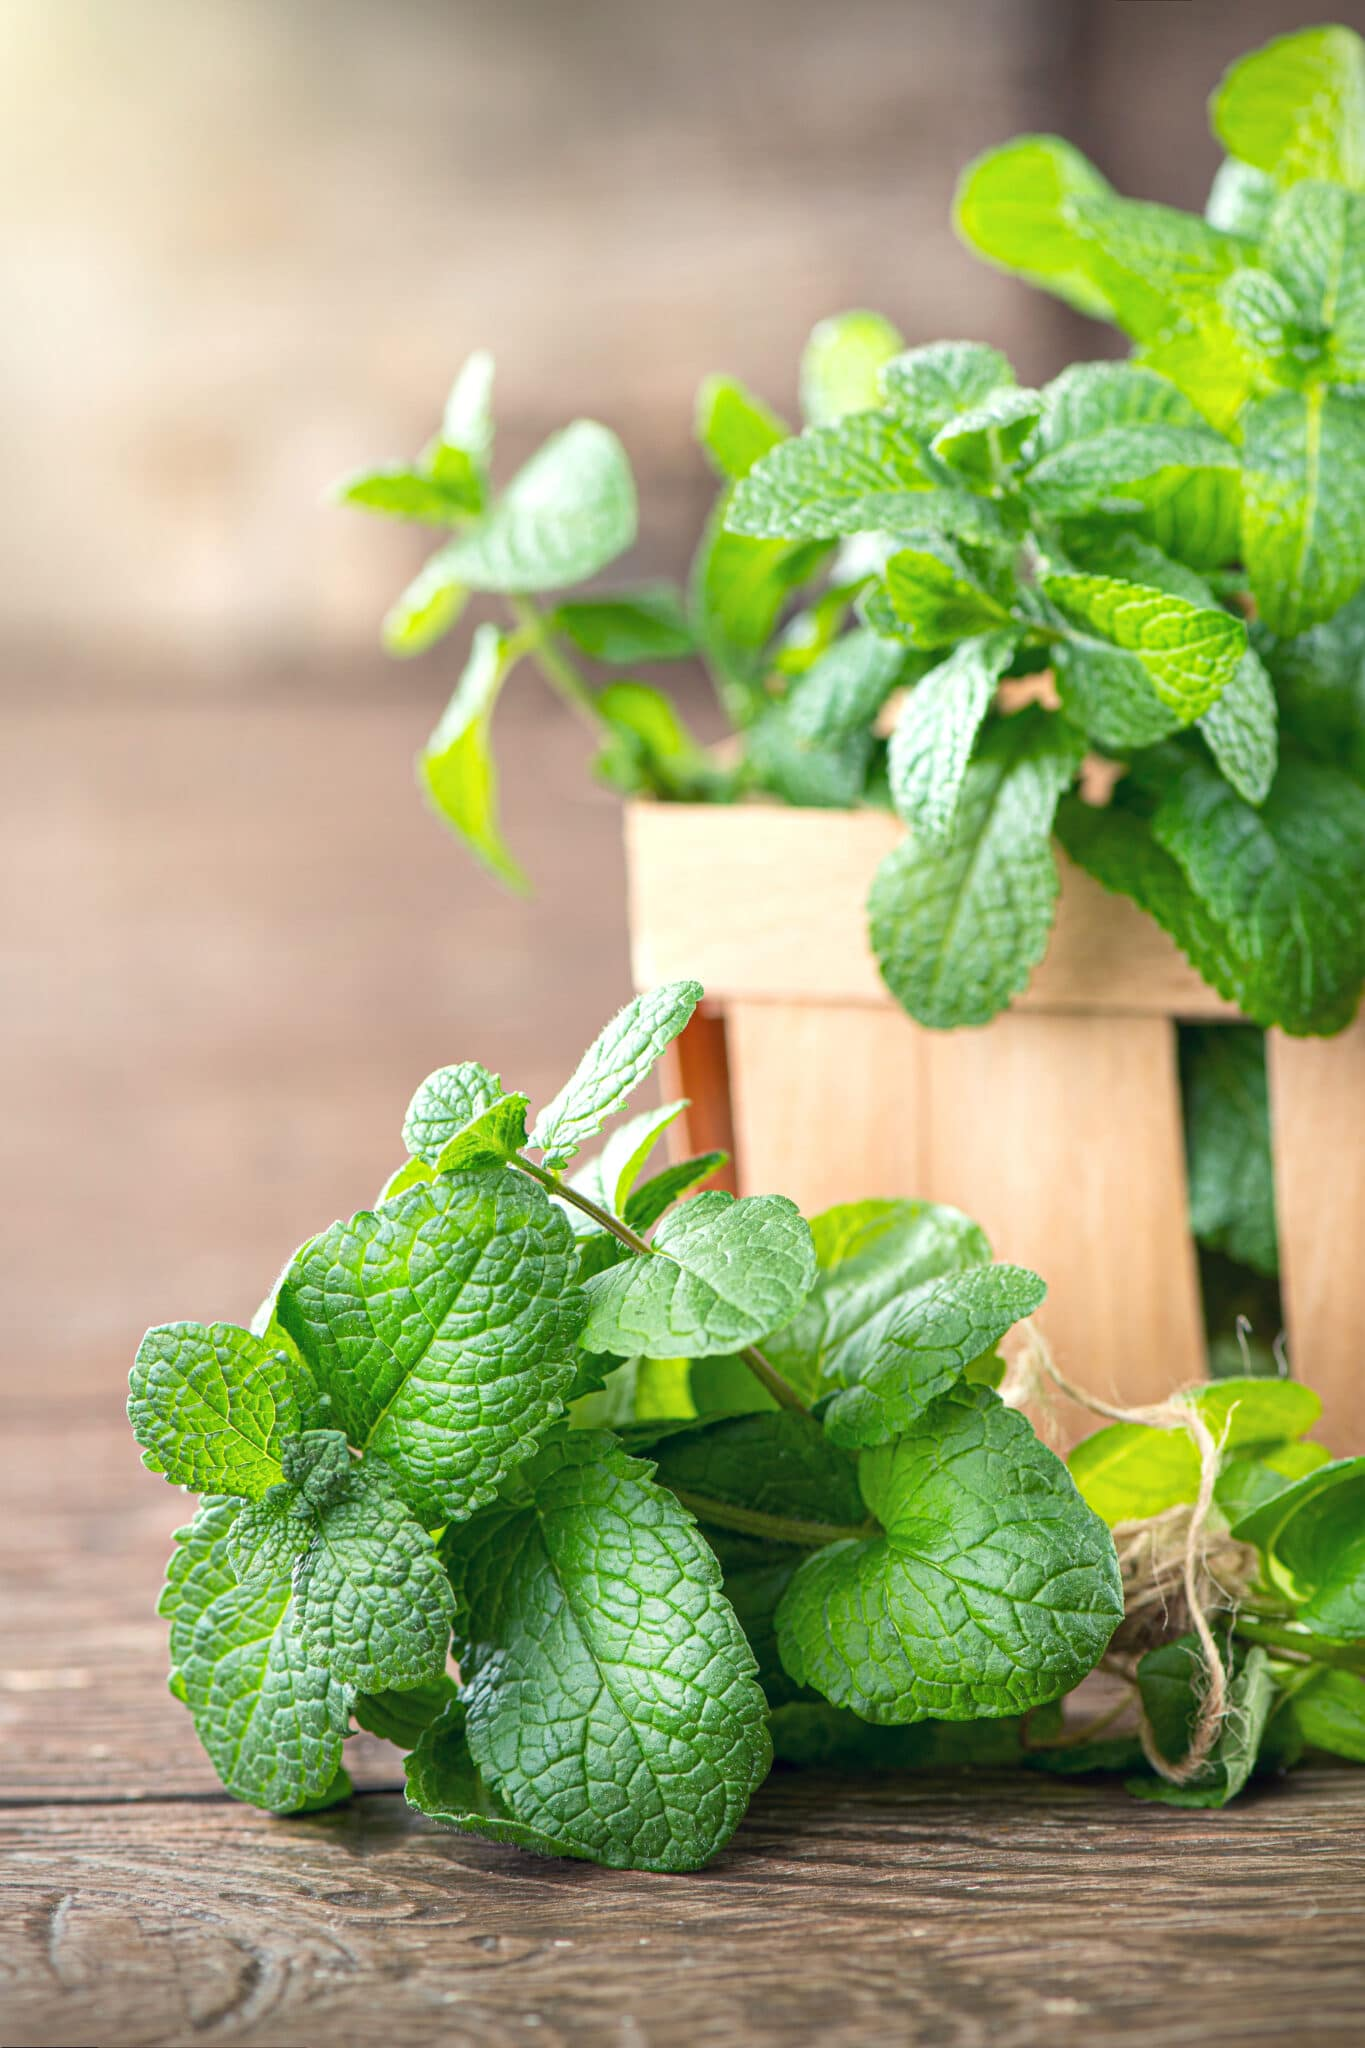 Sprigs of mint tied with a rustic string resting on a wooden tabletop.  A small basket of mint in this background.